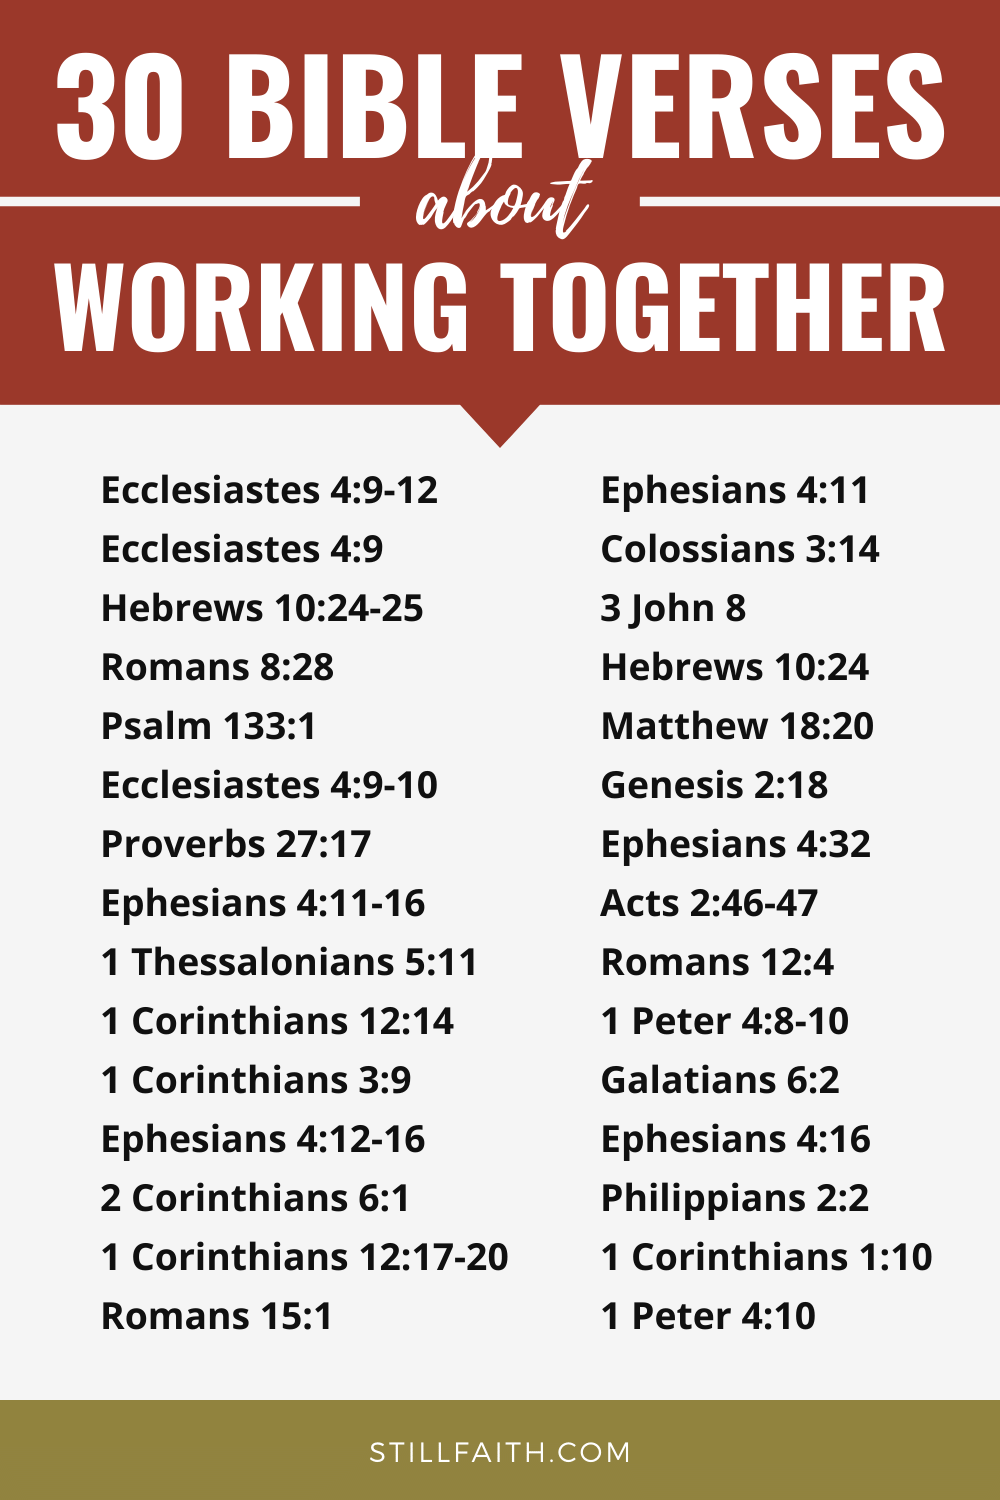 148 Bible Verses about Working Together